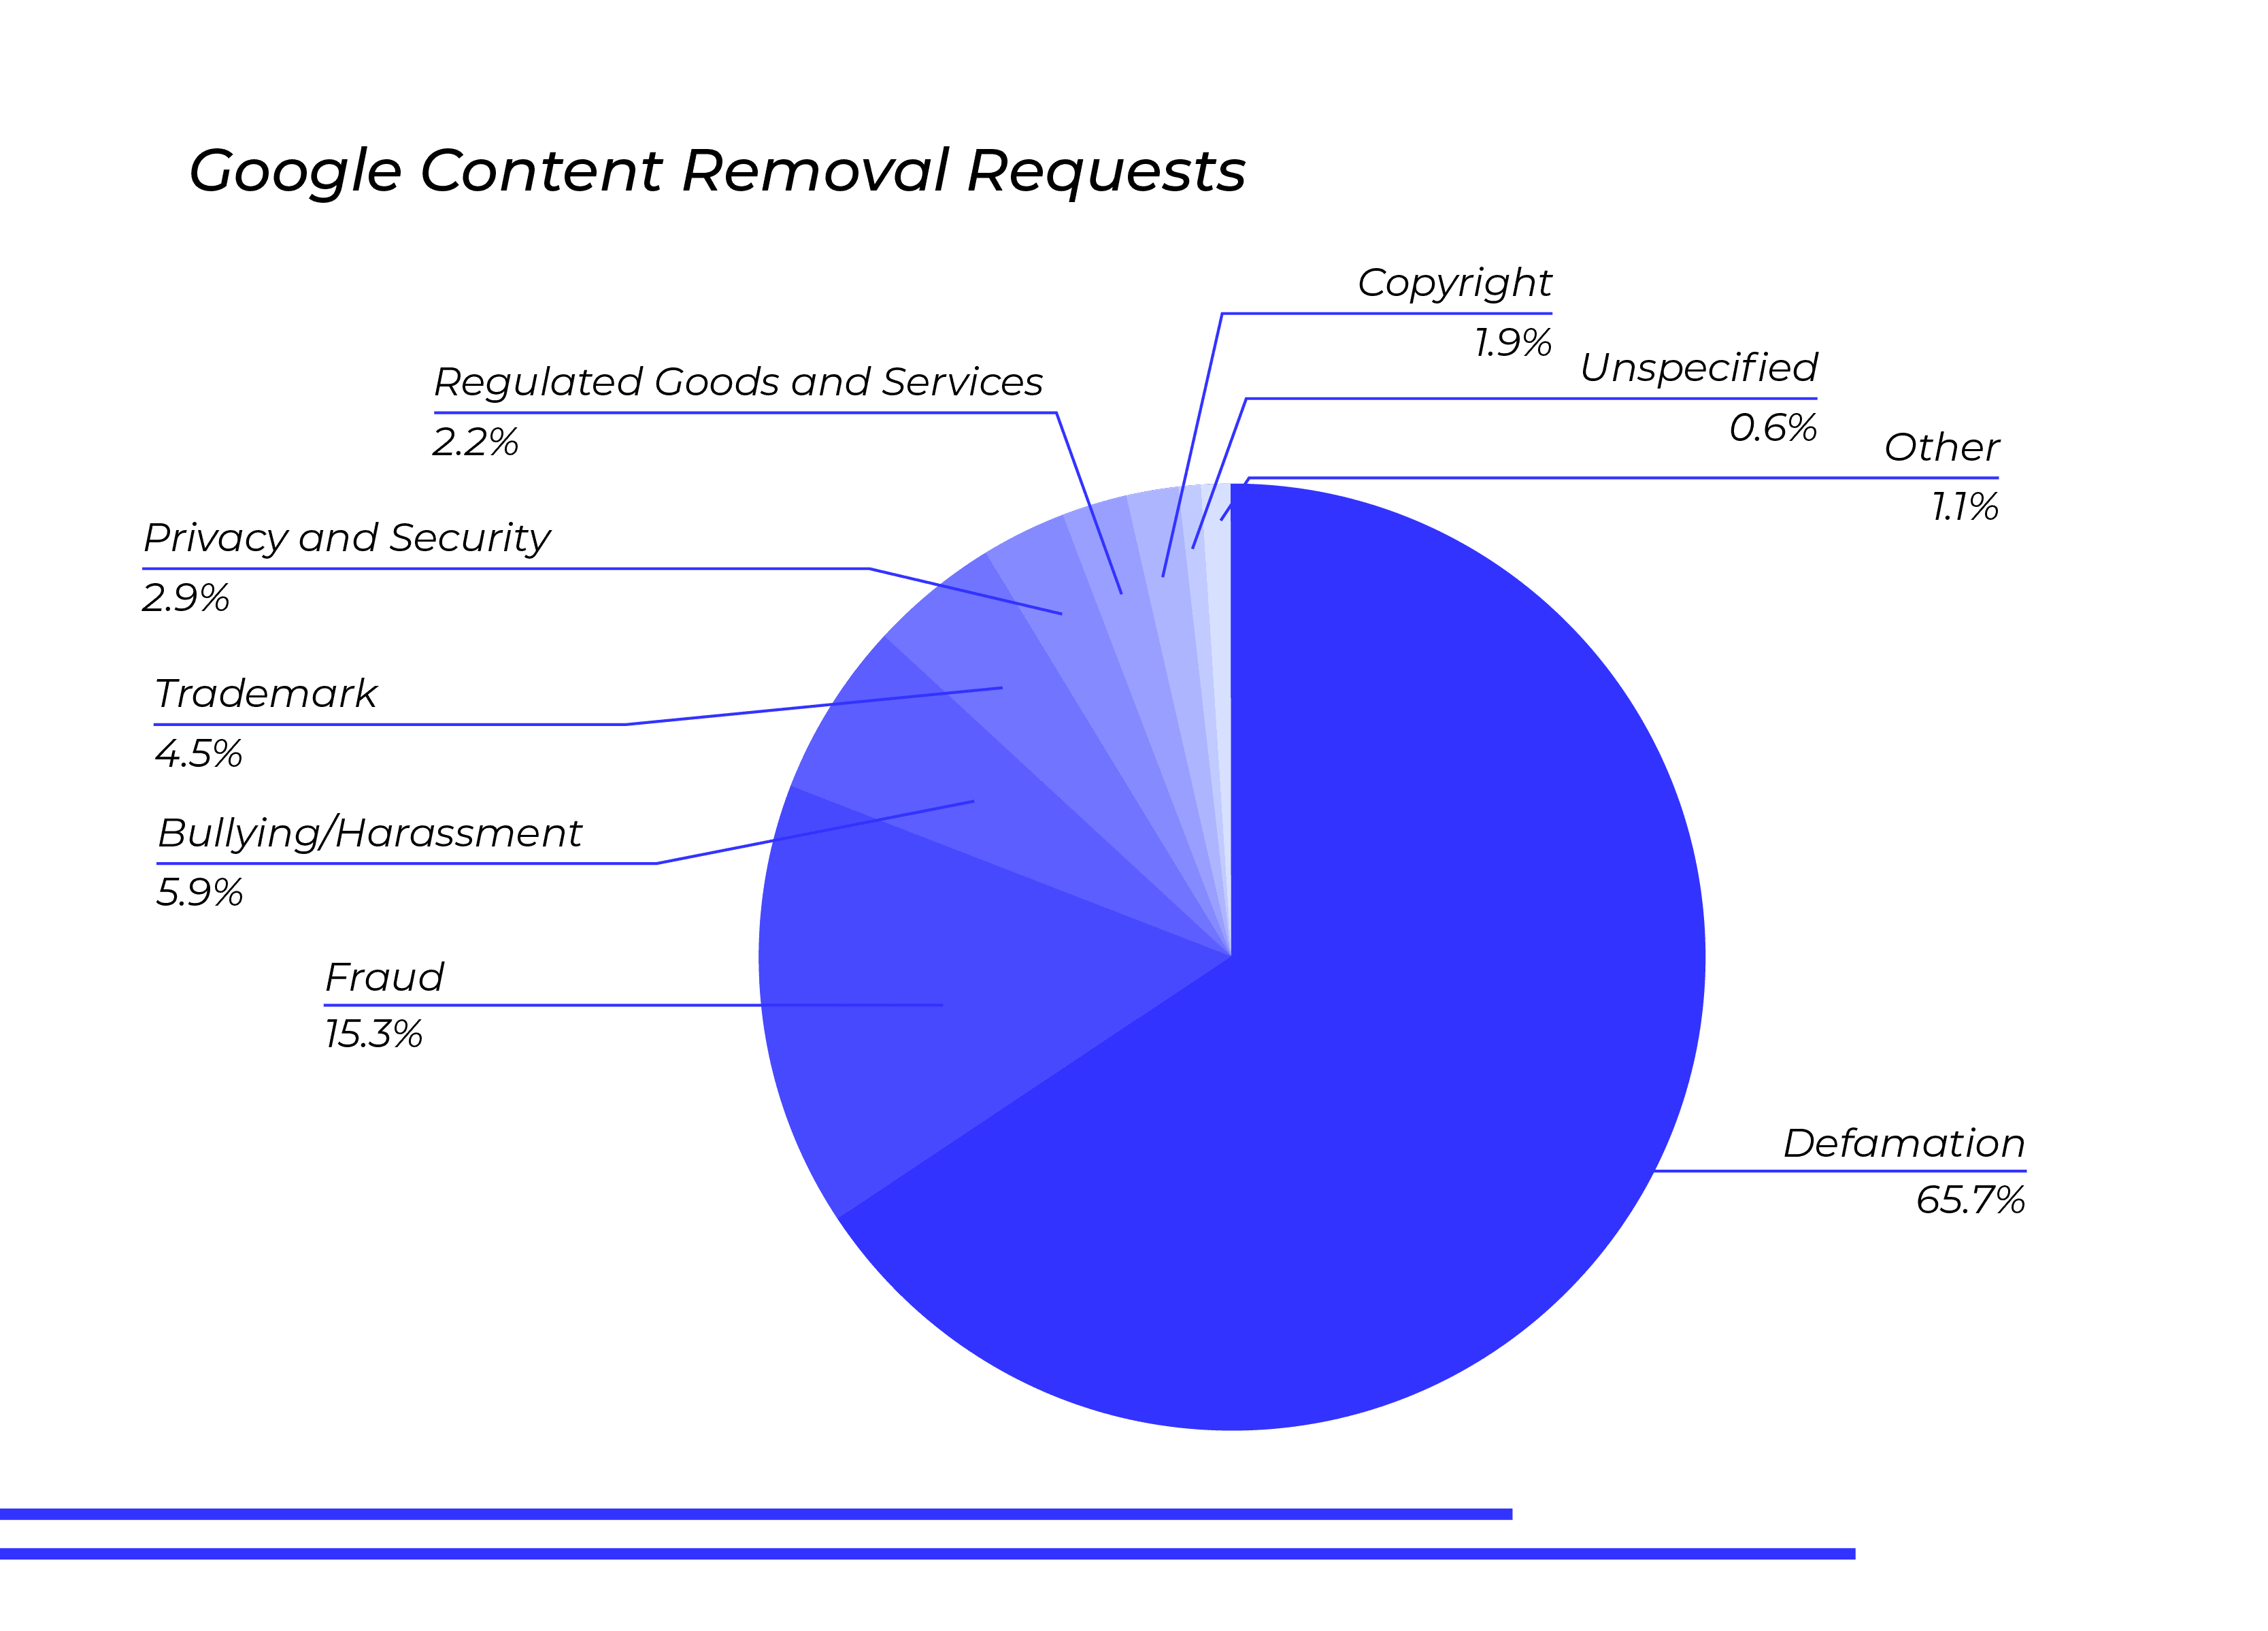 google-content-removal-requests-defamation-65.7-percent